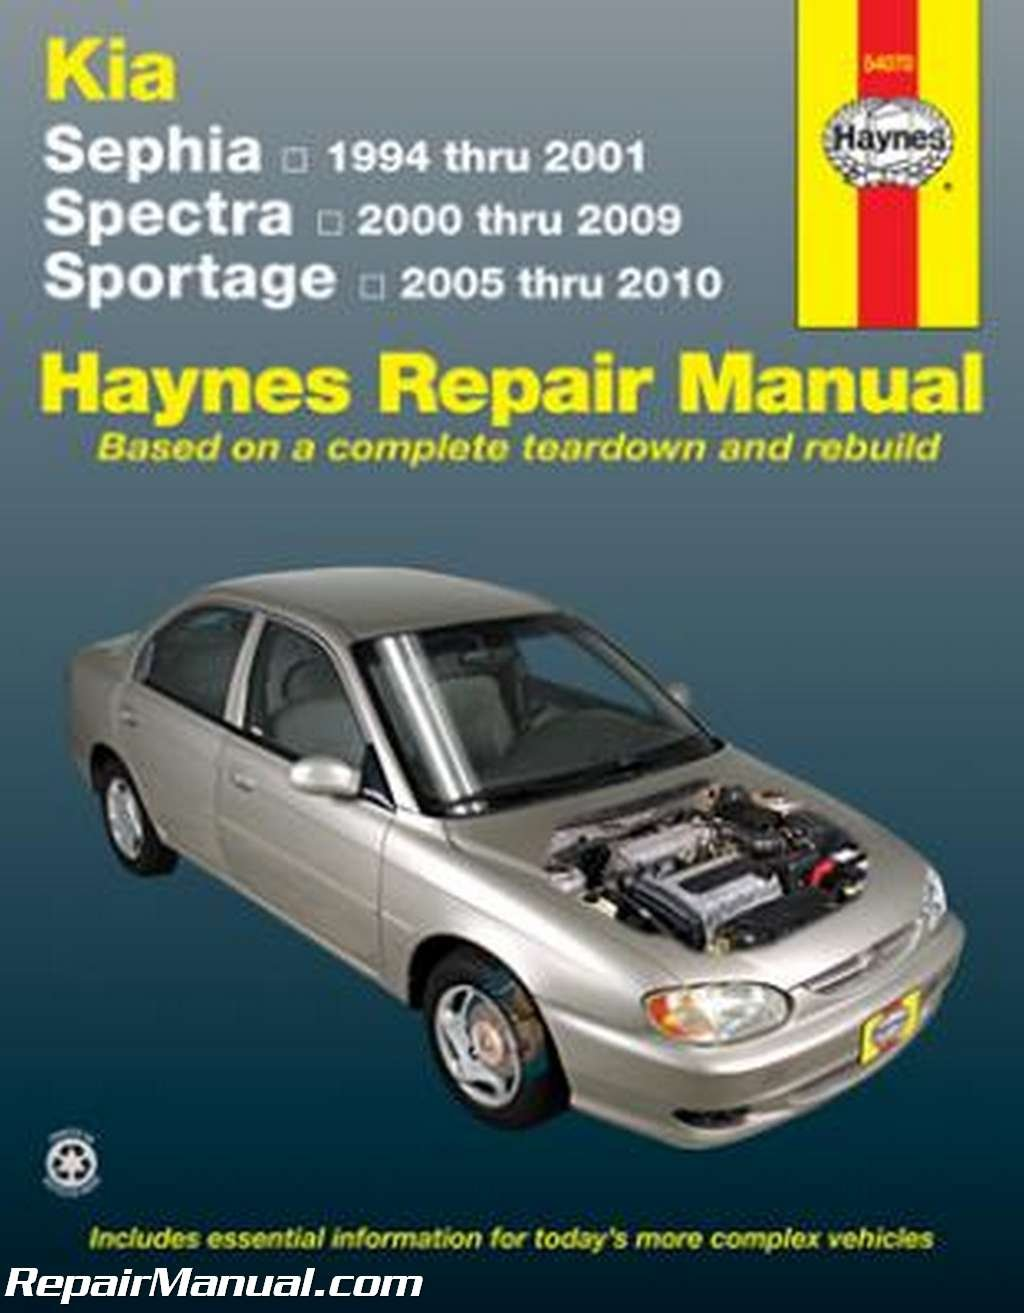 H54070 Haynes 1994-2001 Kia Sephia 2000-2009 Spectra 2005-2010 Sportage  Auto Repair Manual: Manufacturer: Amazon.com: Books